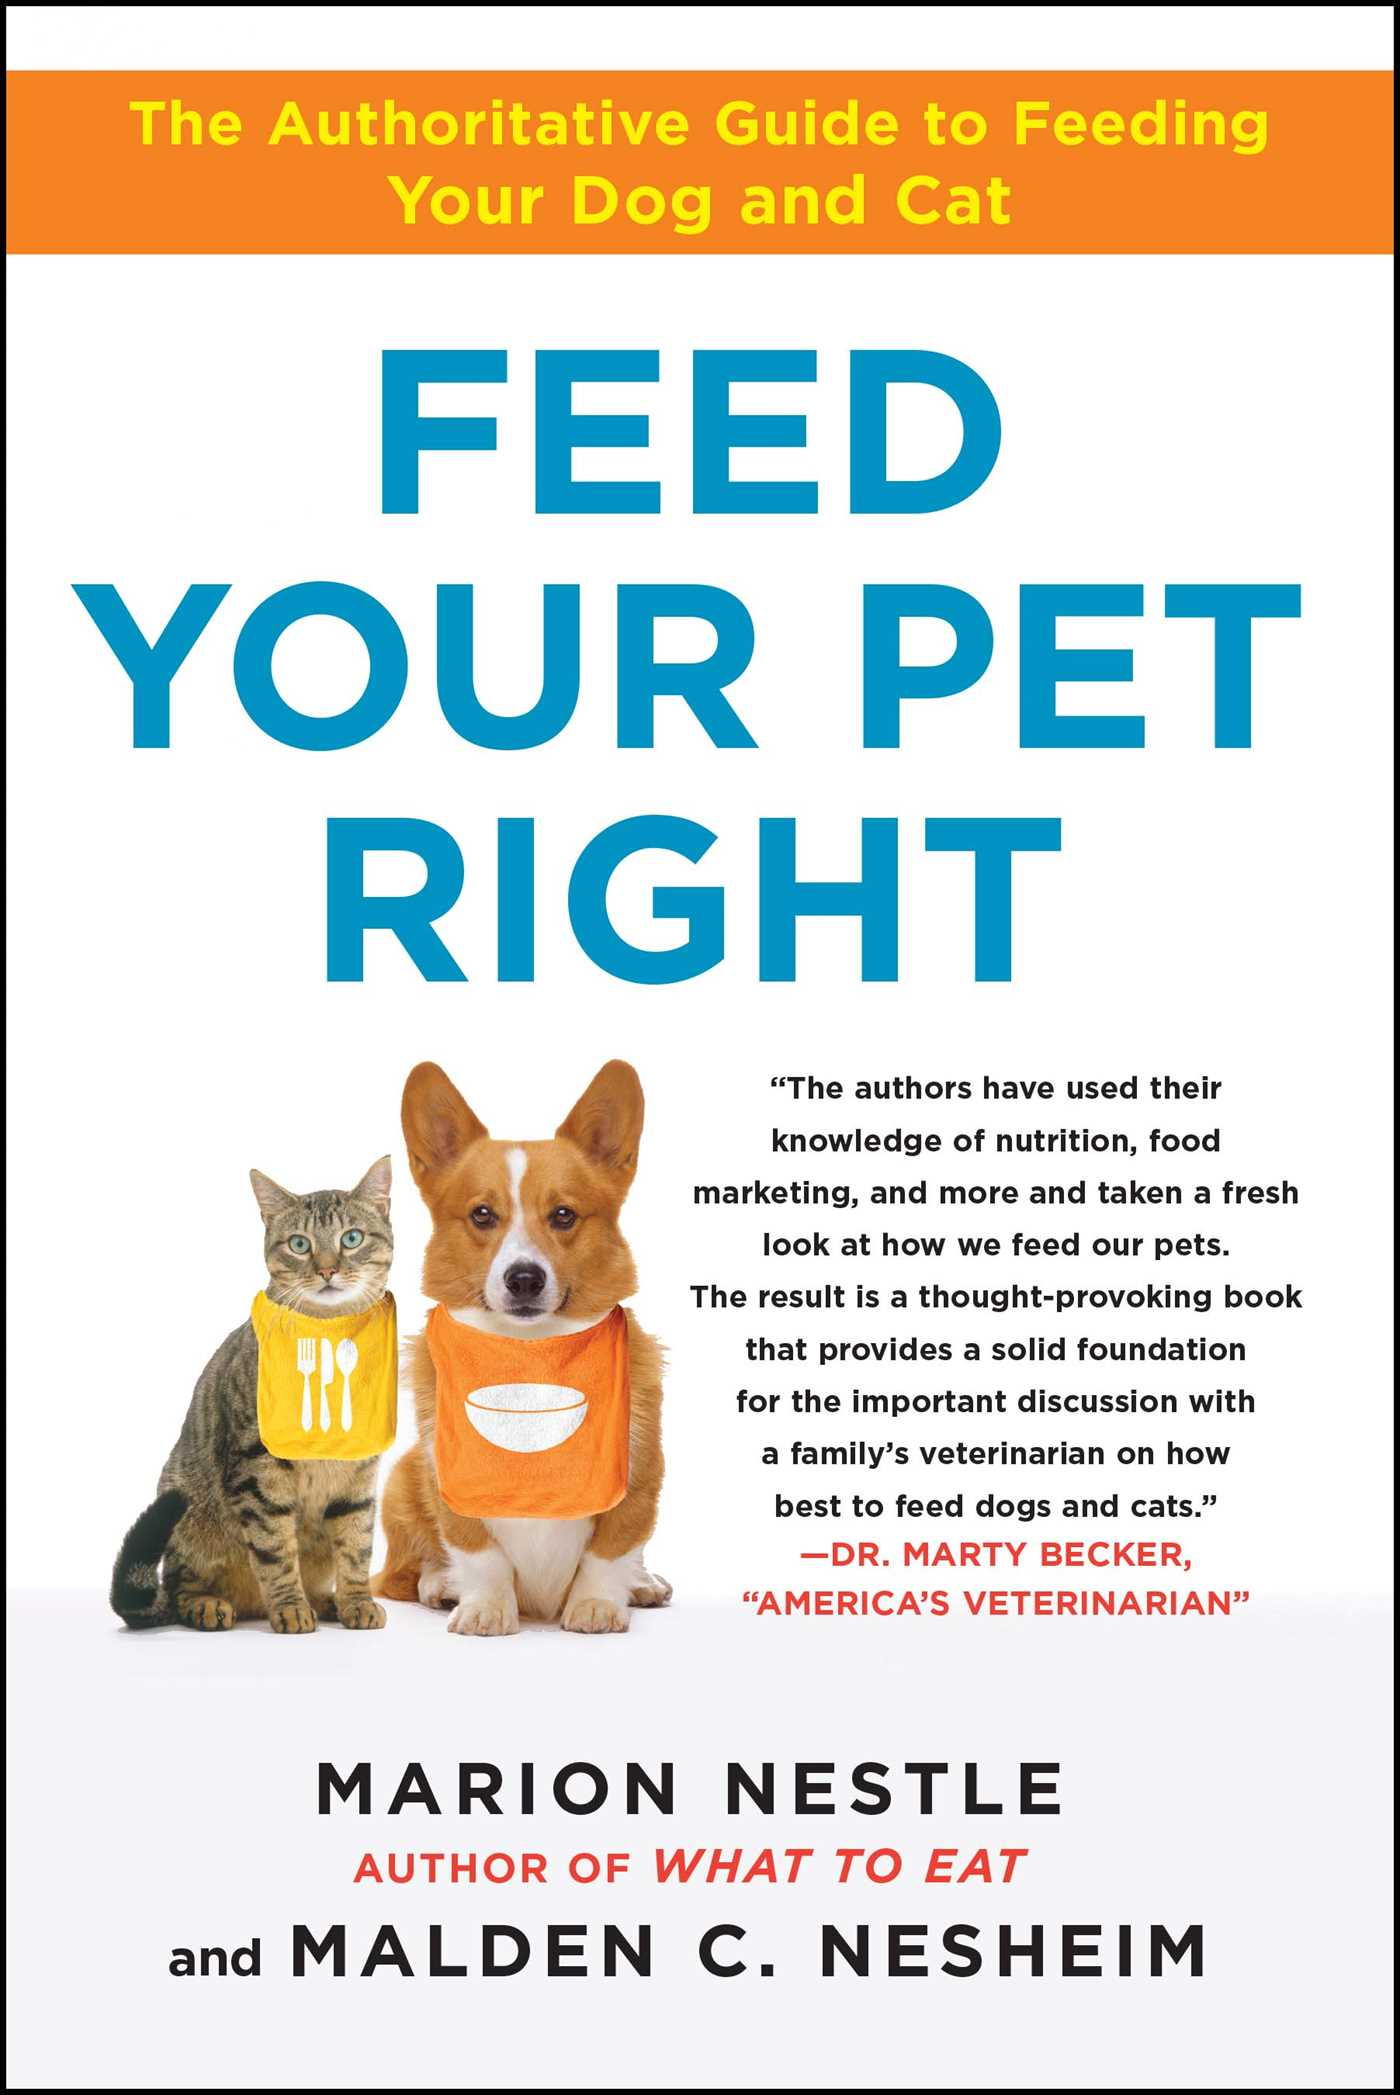 Feed your pet right 9781439166420 hr